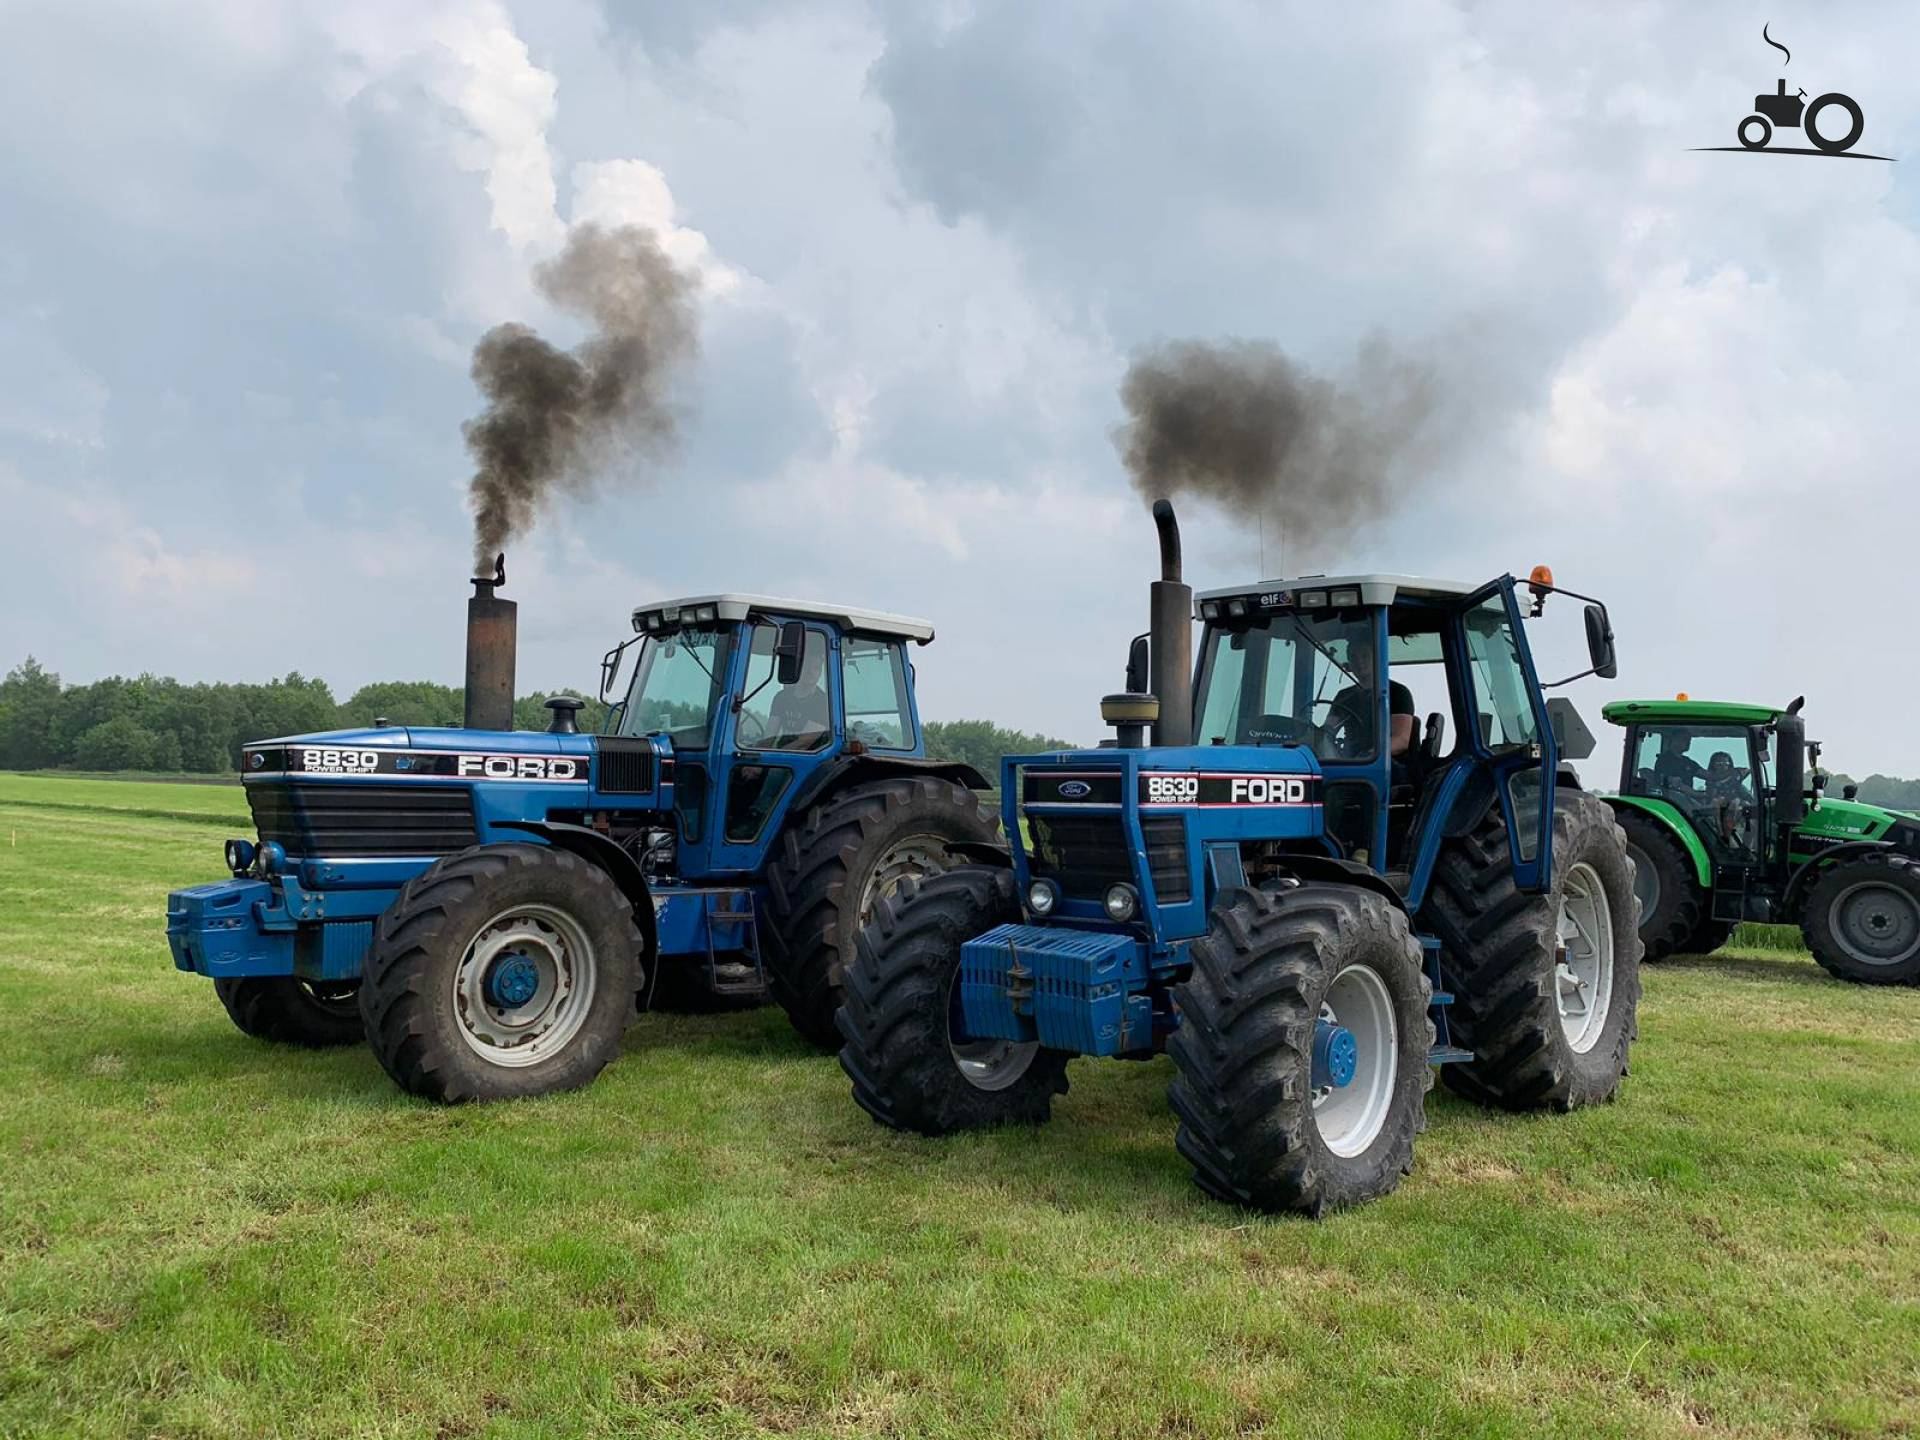 Ford 8830